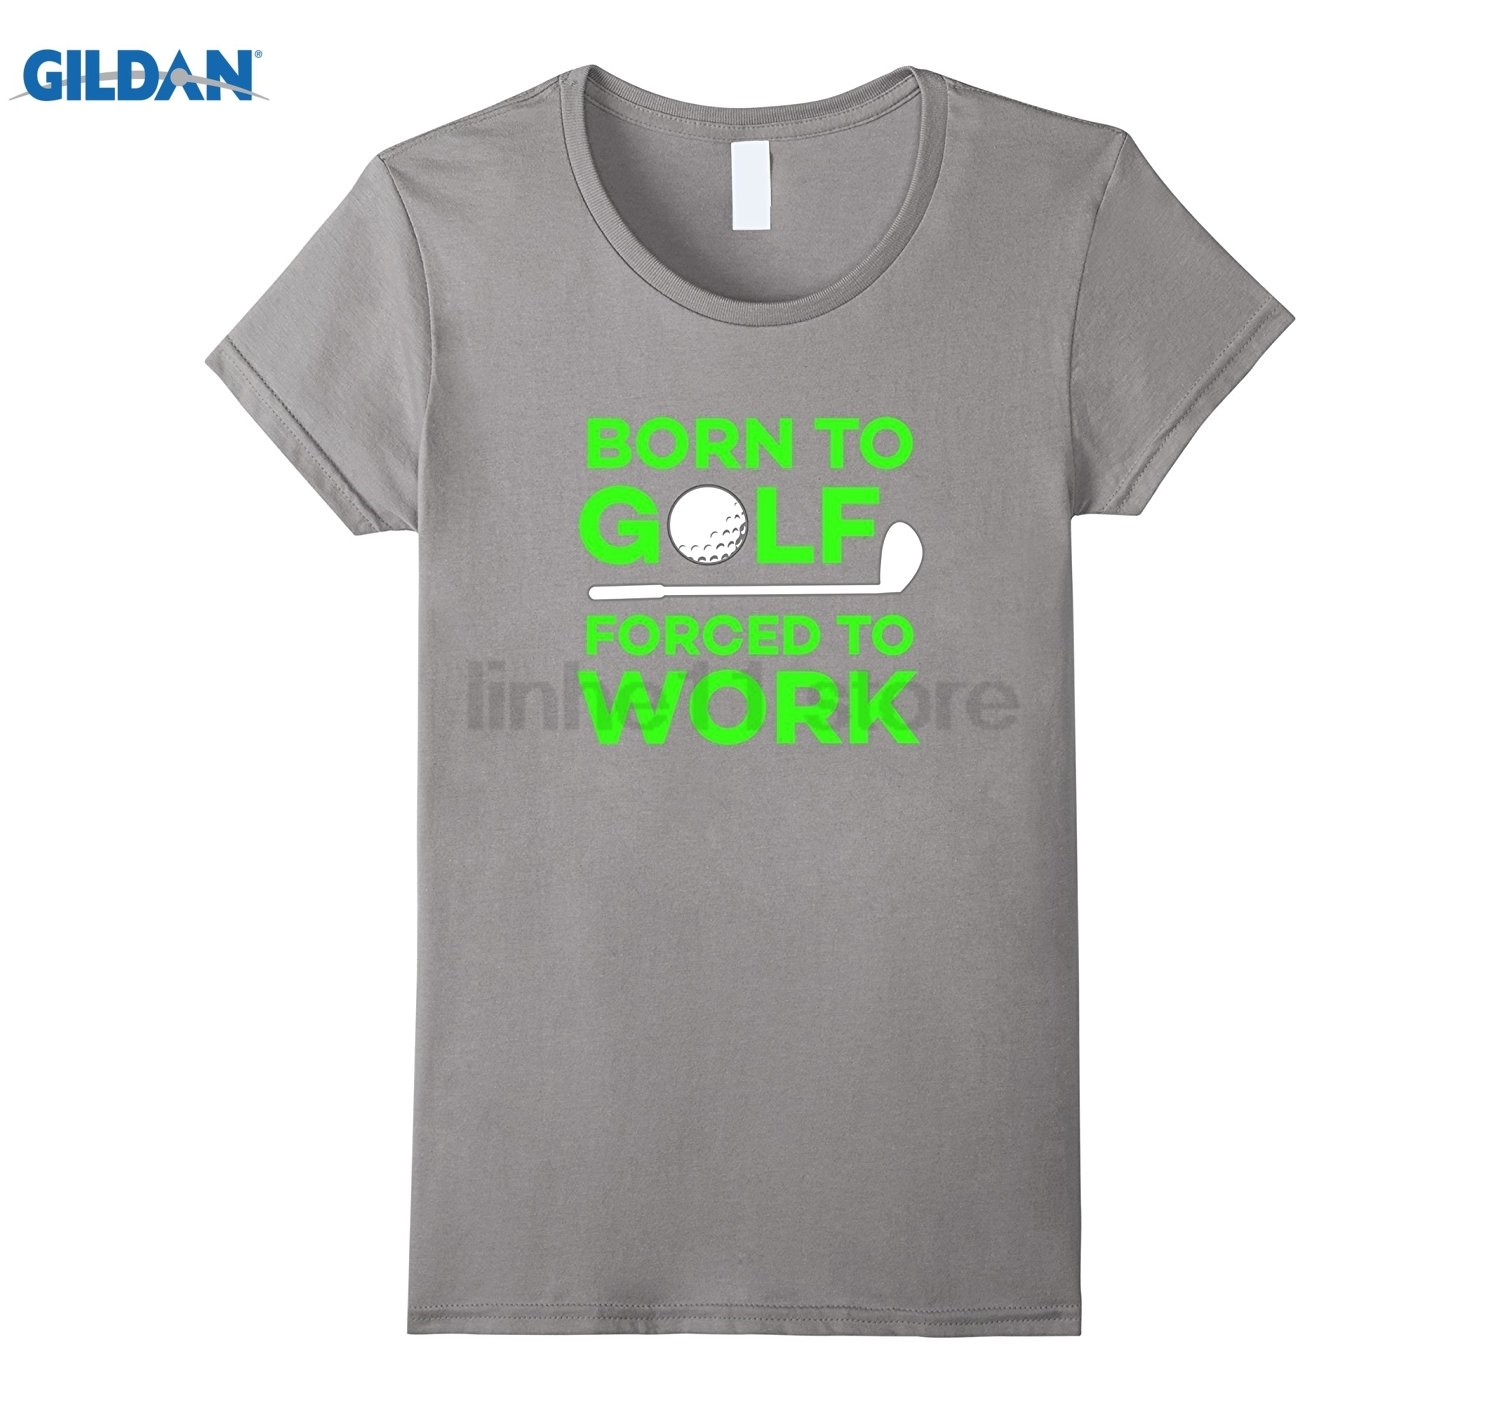 GILDAN Born To Forced To Work T-Shirt - Funny Golfing Shirt Womens T-shirt